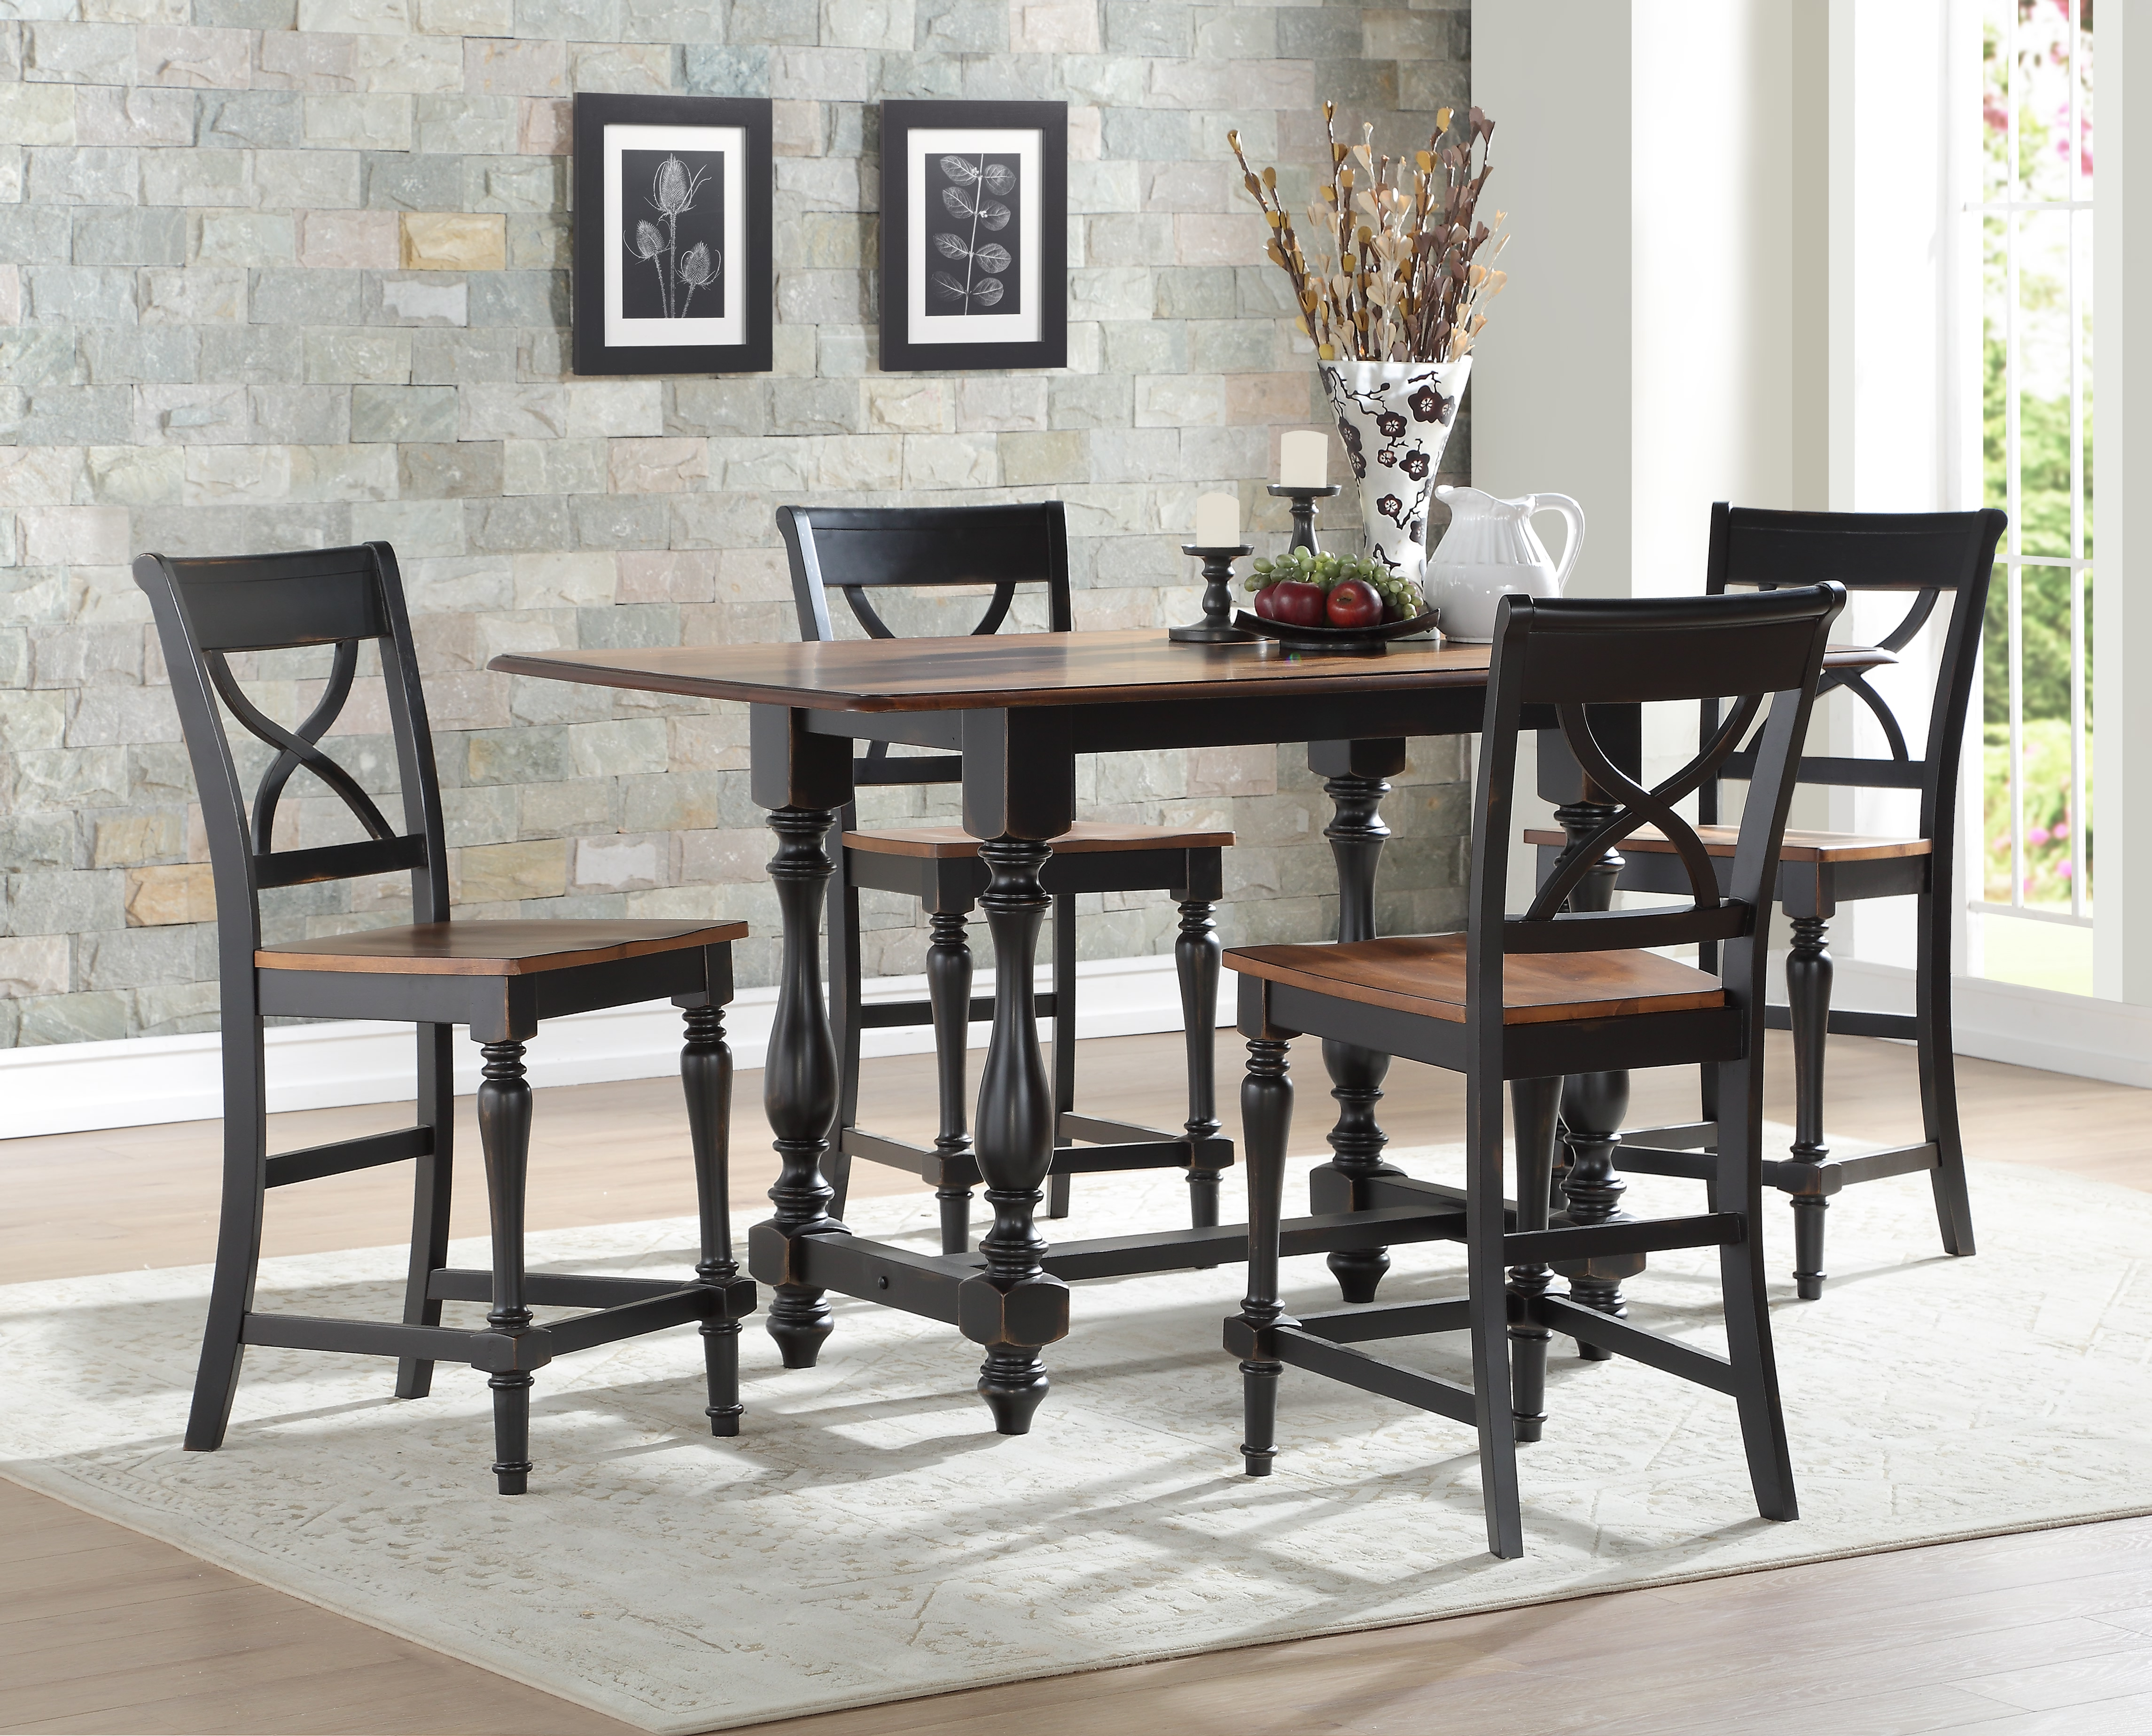 Torrance Pub Dining Set by Winners Only 05